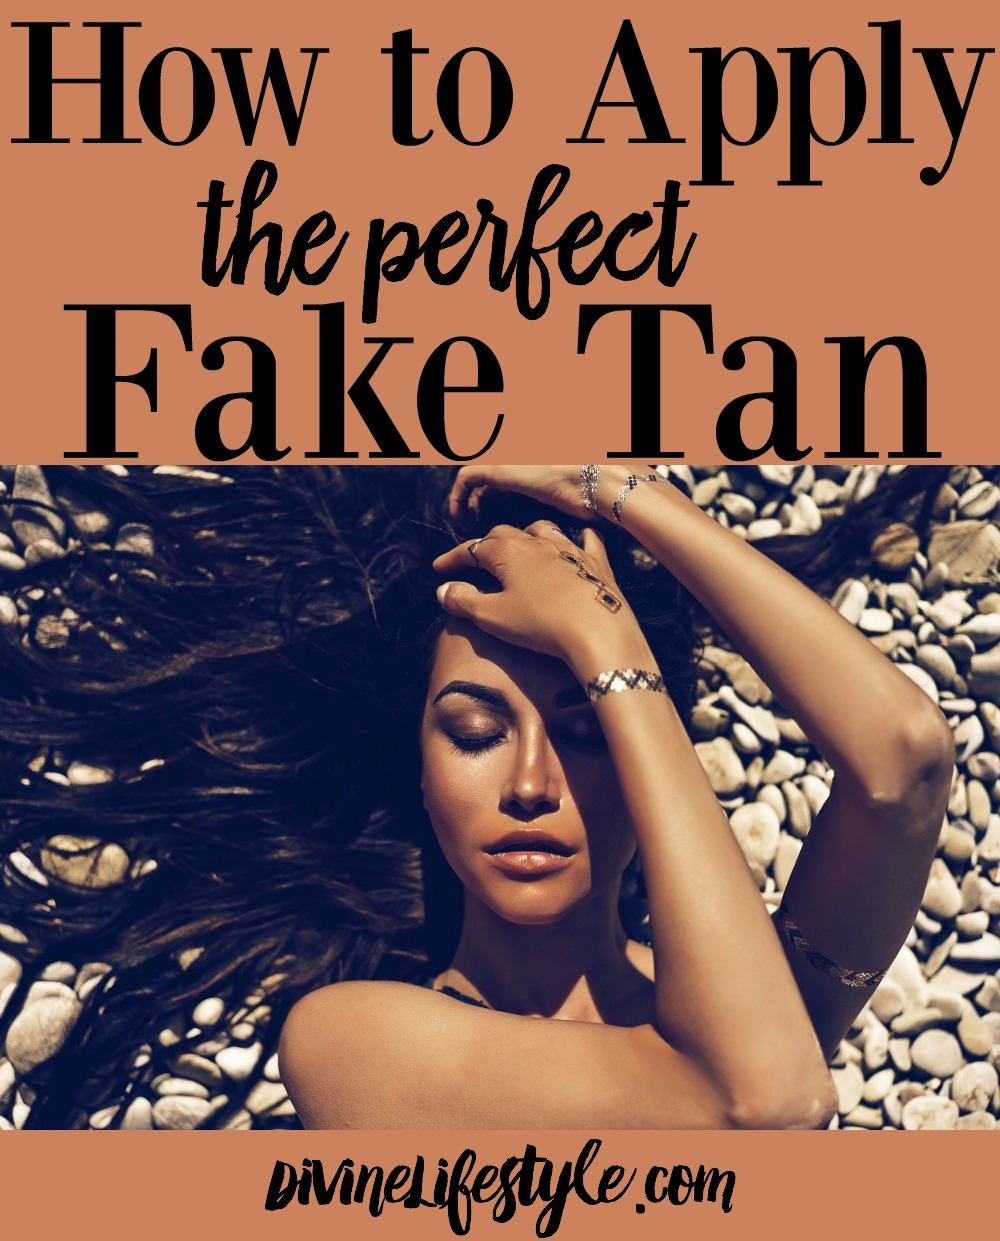 How to Apply a Perfect Fake Tan